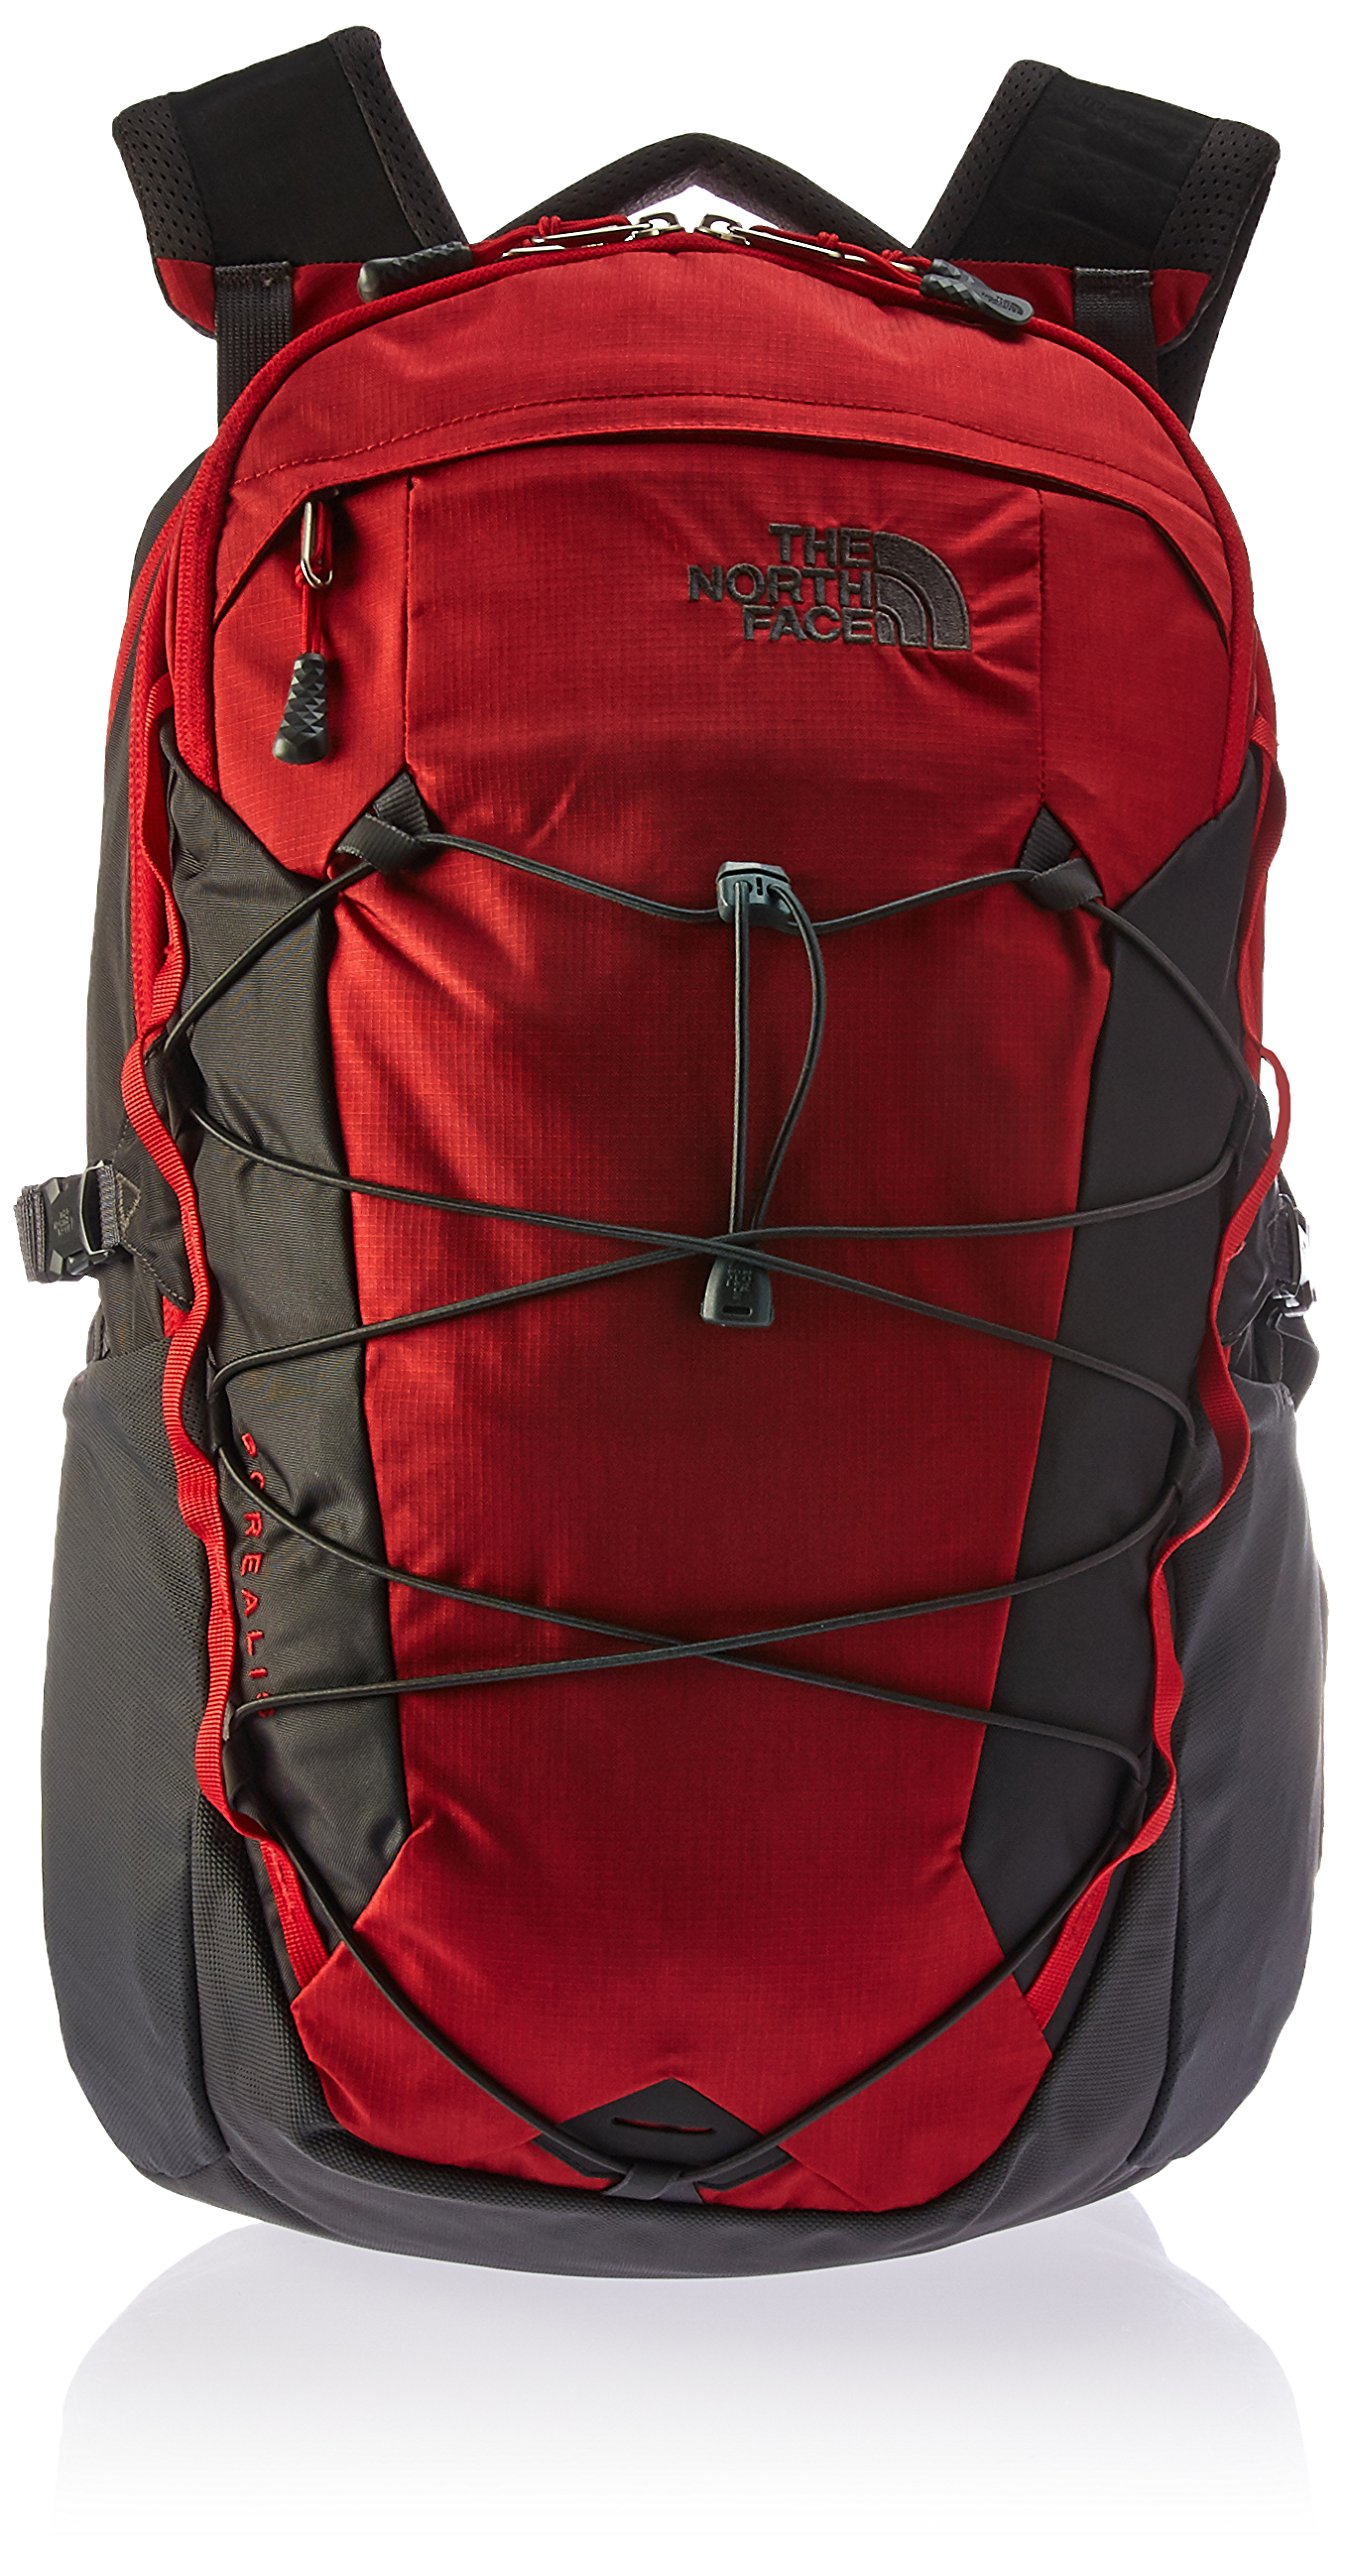 The North Face Borealis Laptop Backpack - 17'' (Rage Red Ripstop/Asphalt Grey)